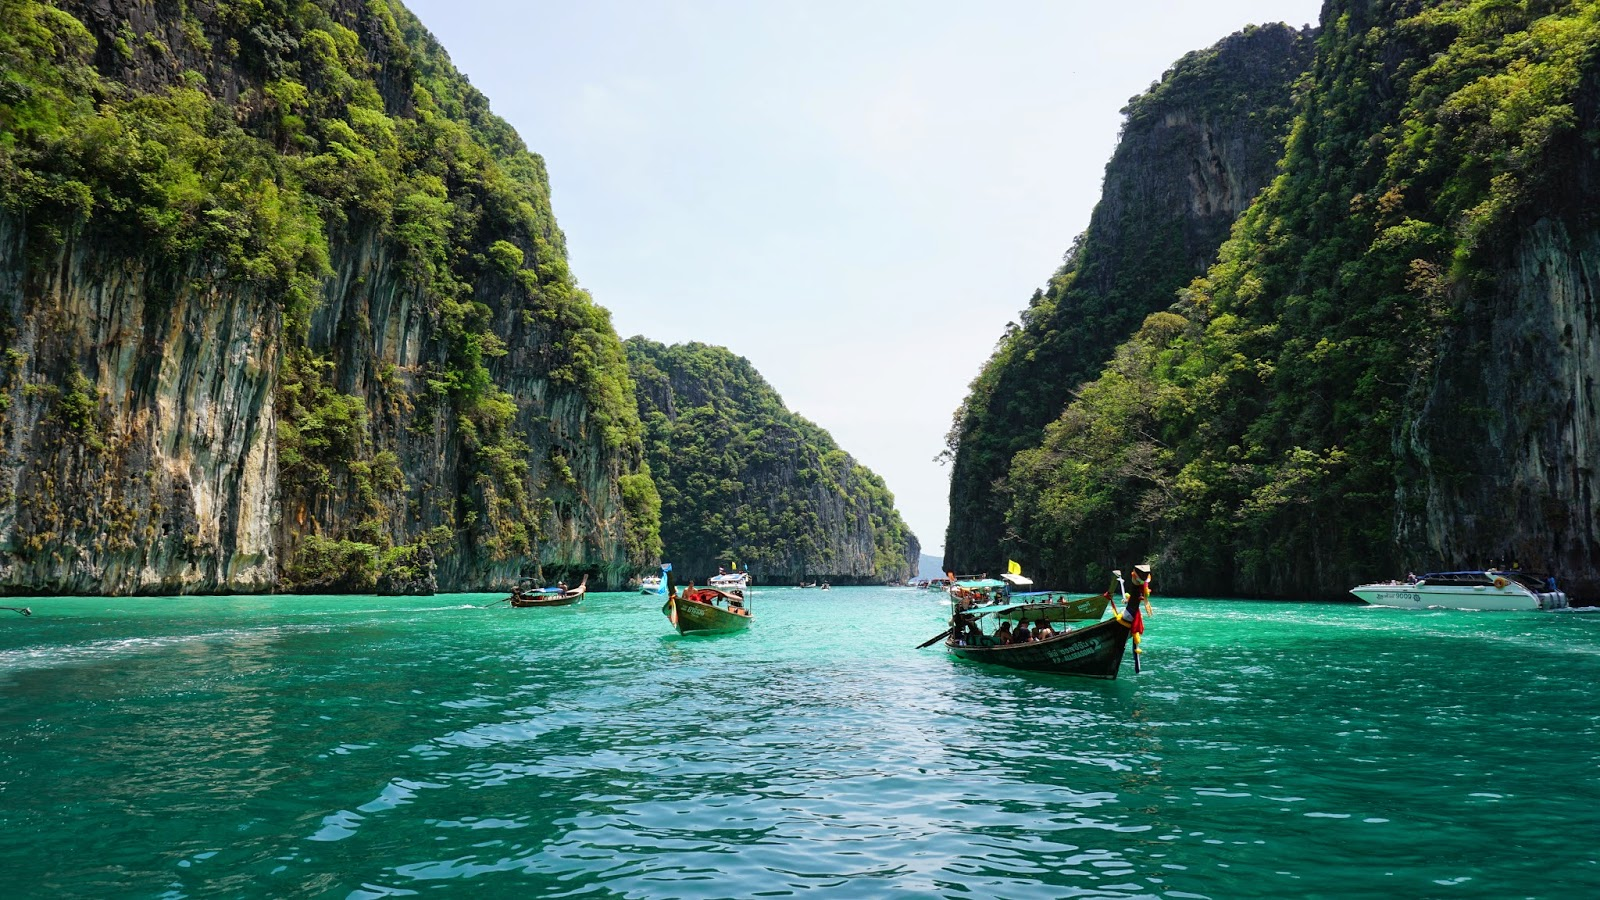 Ao Pileh Ko Phi-Phi Don, Krabi, Koh Phi Phi & Phuket Itinerary (7 days) | Eat. Travel ...